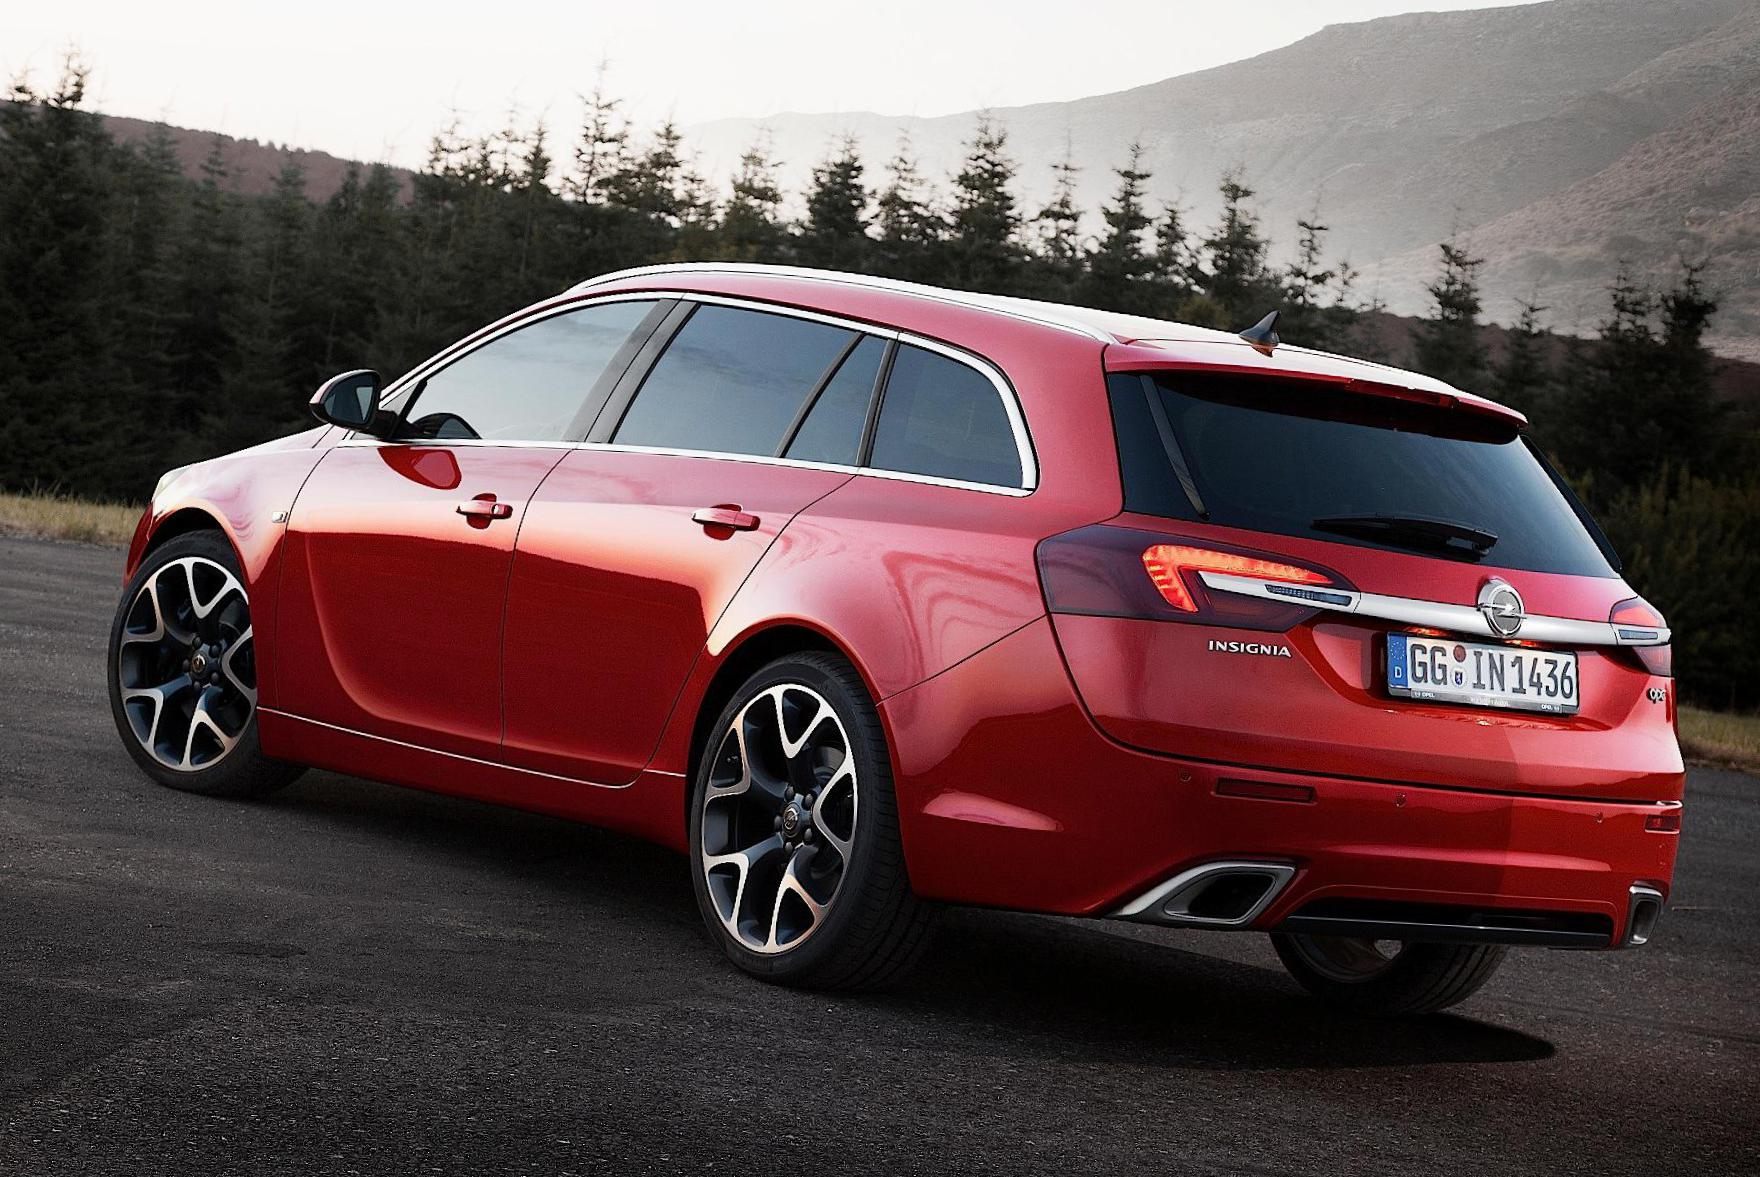 Insignia OPC Sports Tourer Opel specs wagon